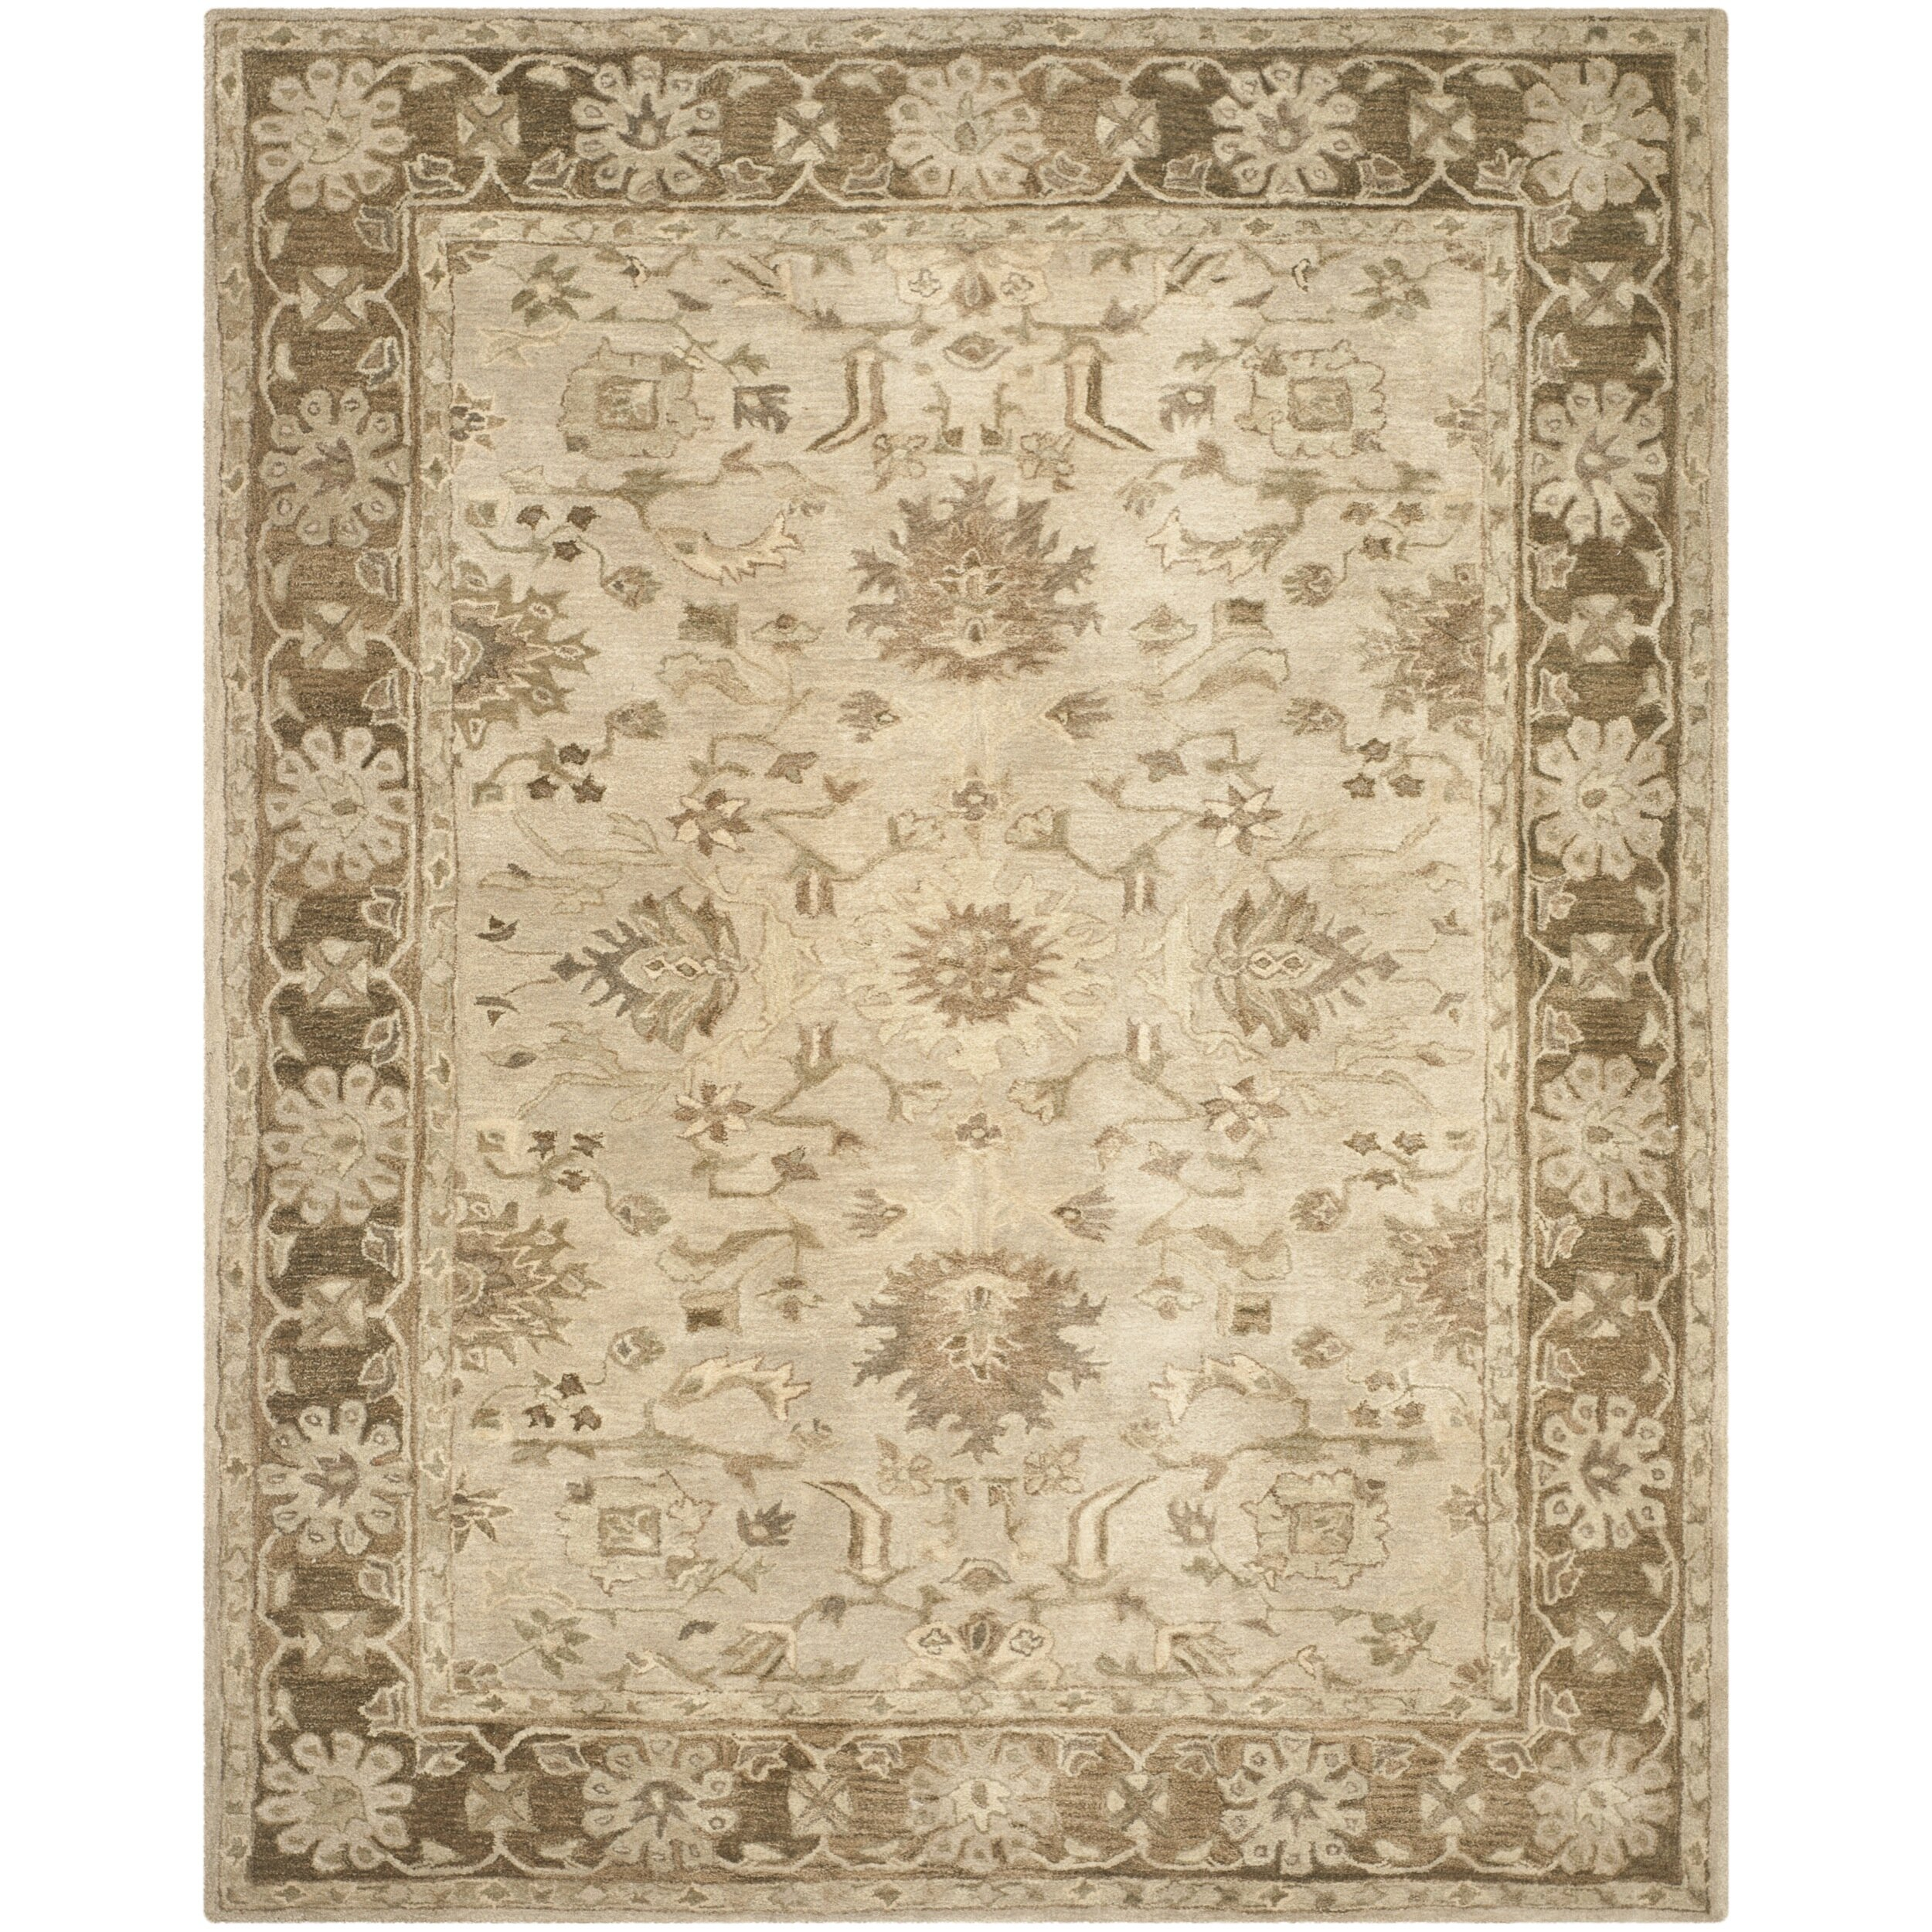 Area Rugs For The Bedroom